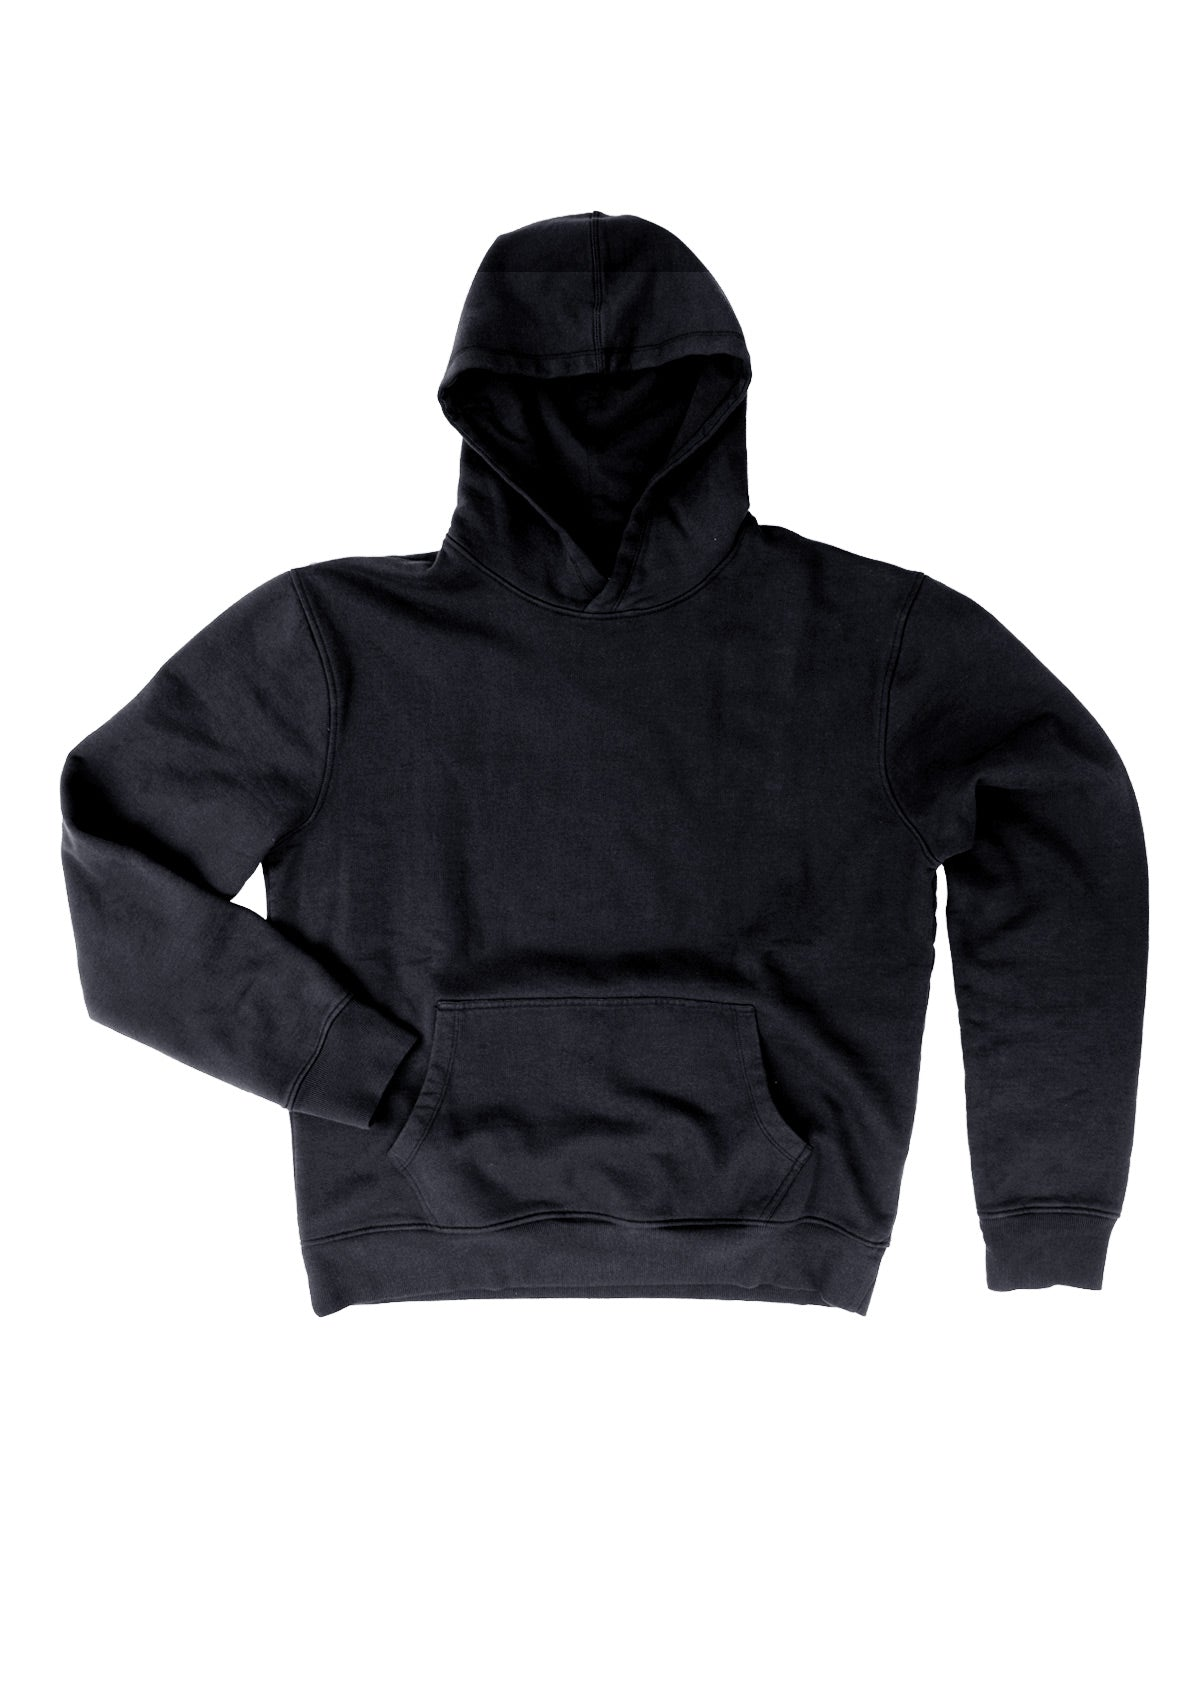 needessentials organic cotton hoodie jumper black